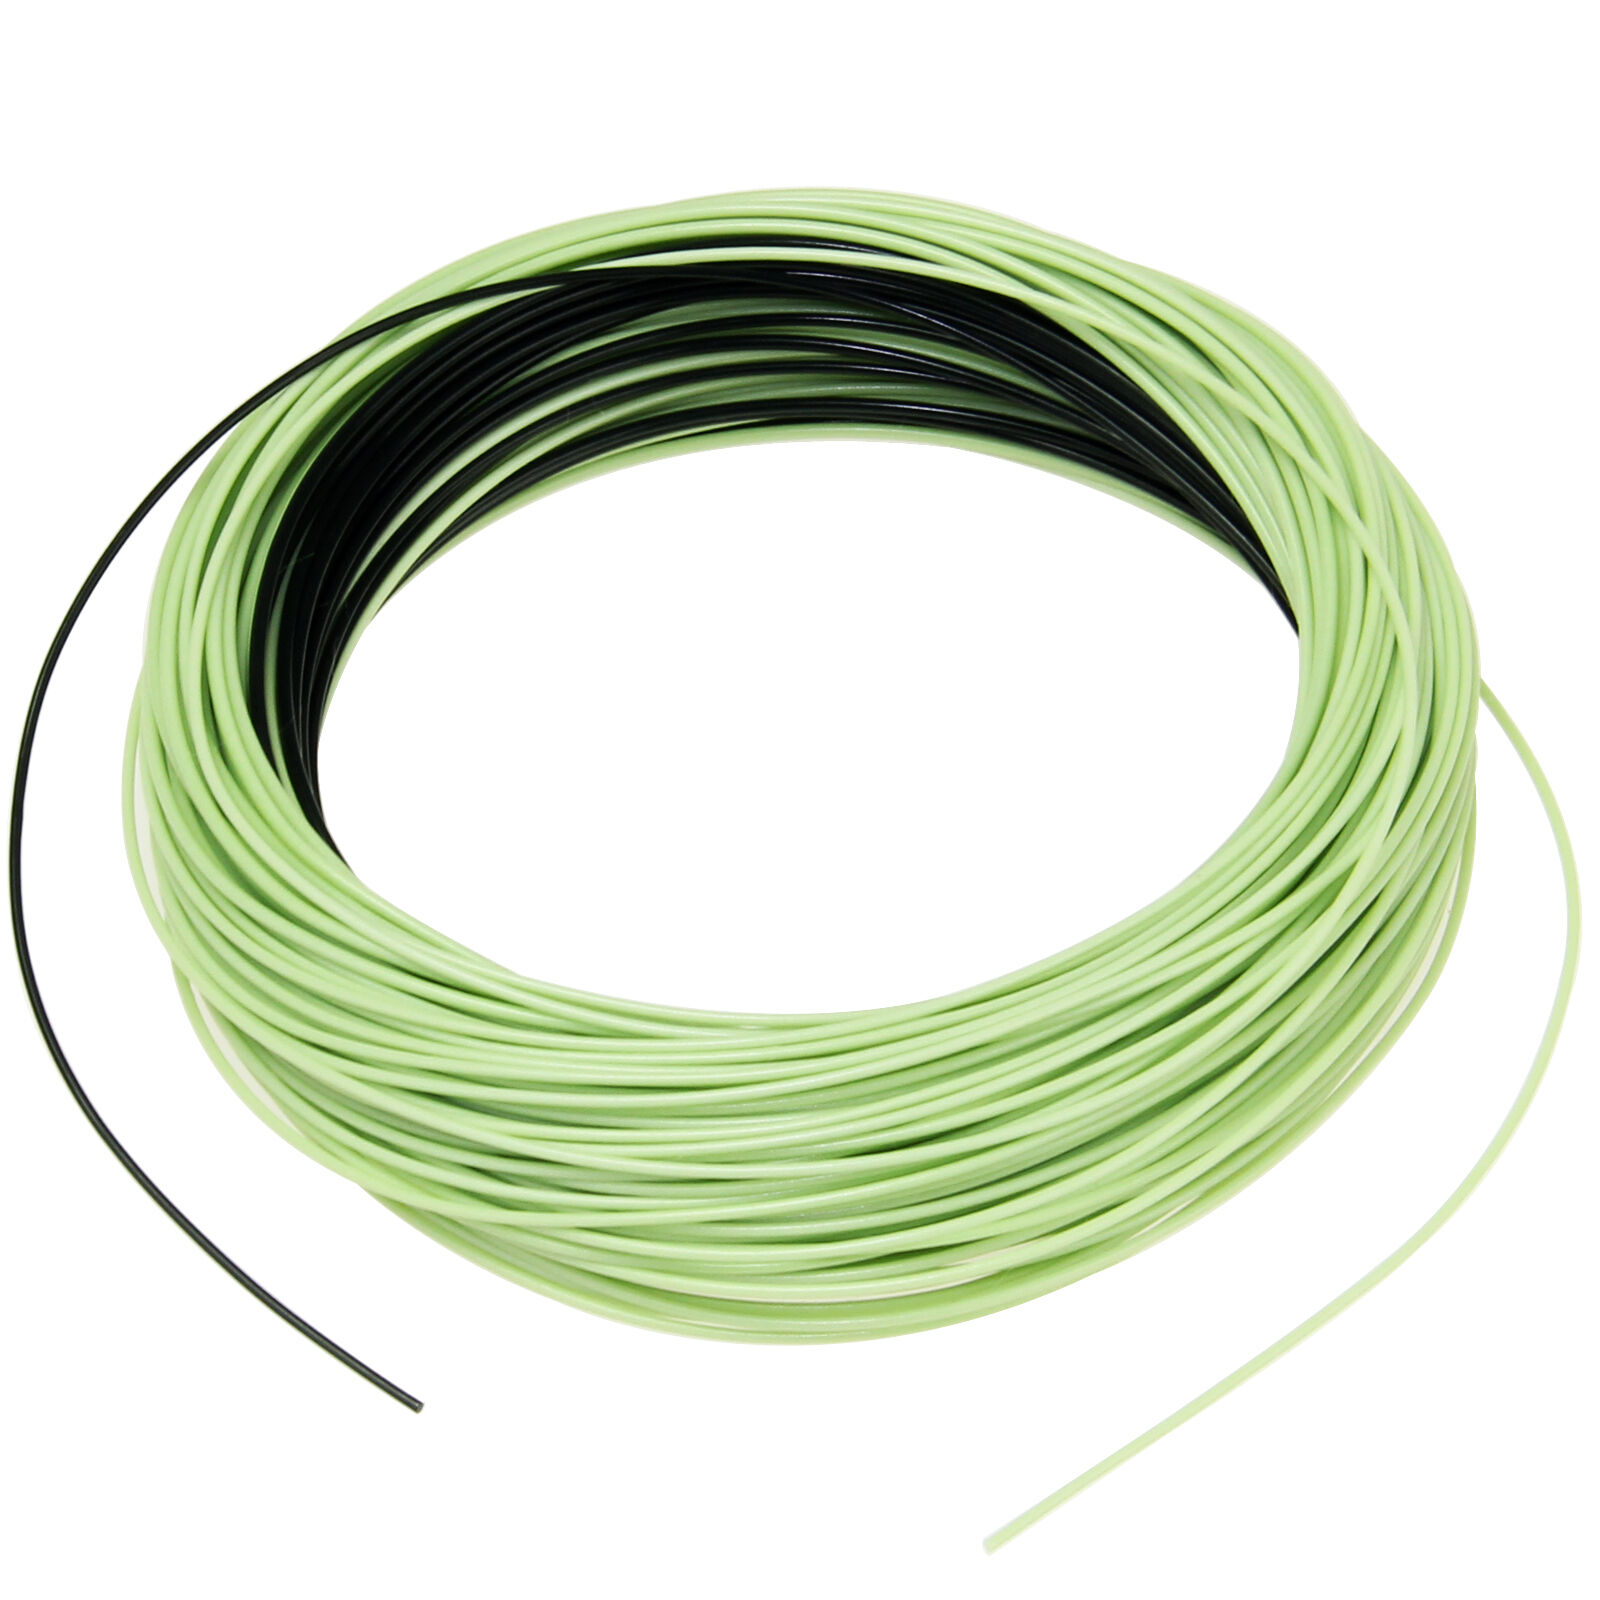 RIO Fly Line Versi Tip II WF5F Line with 4 Tips GREAT NEW